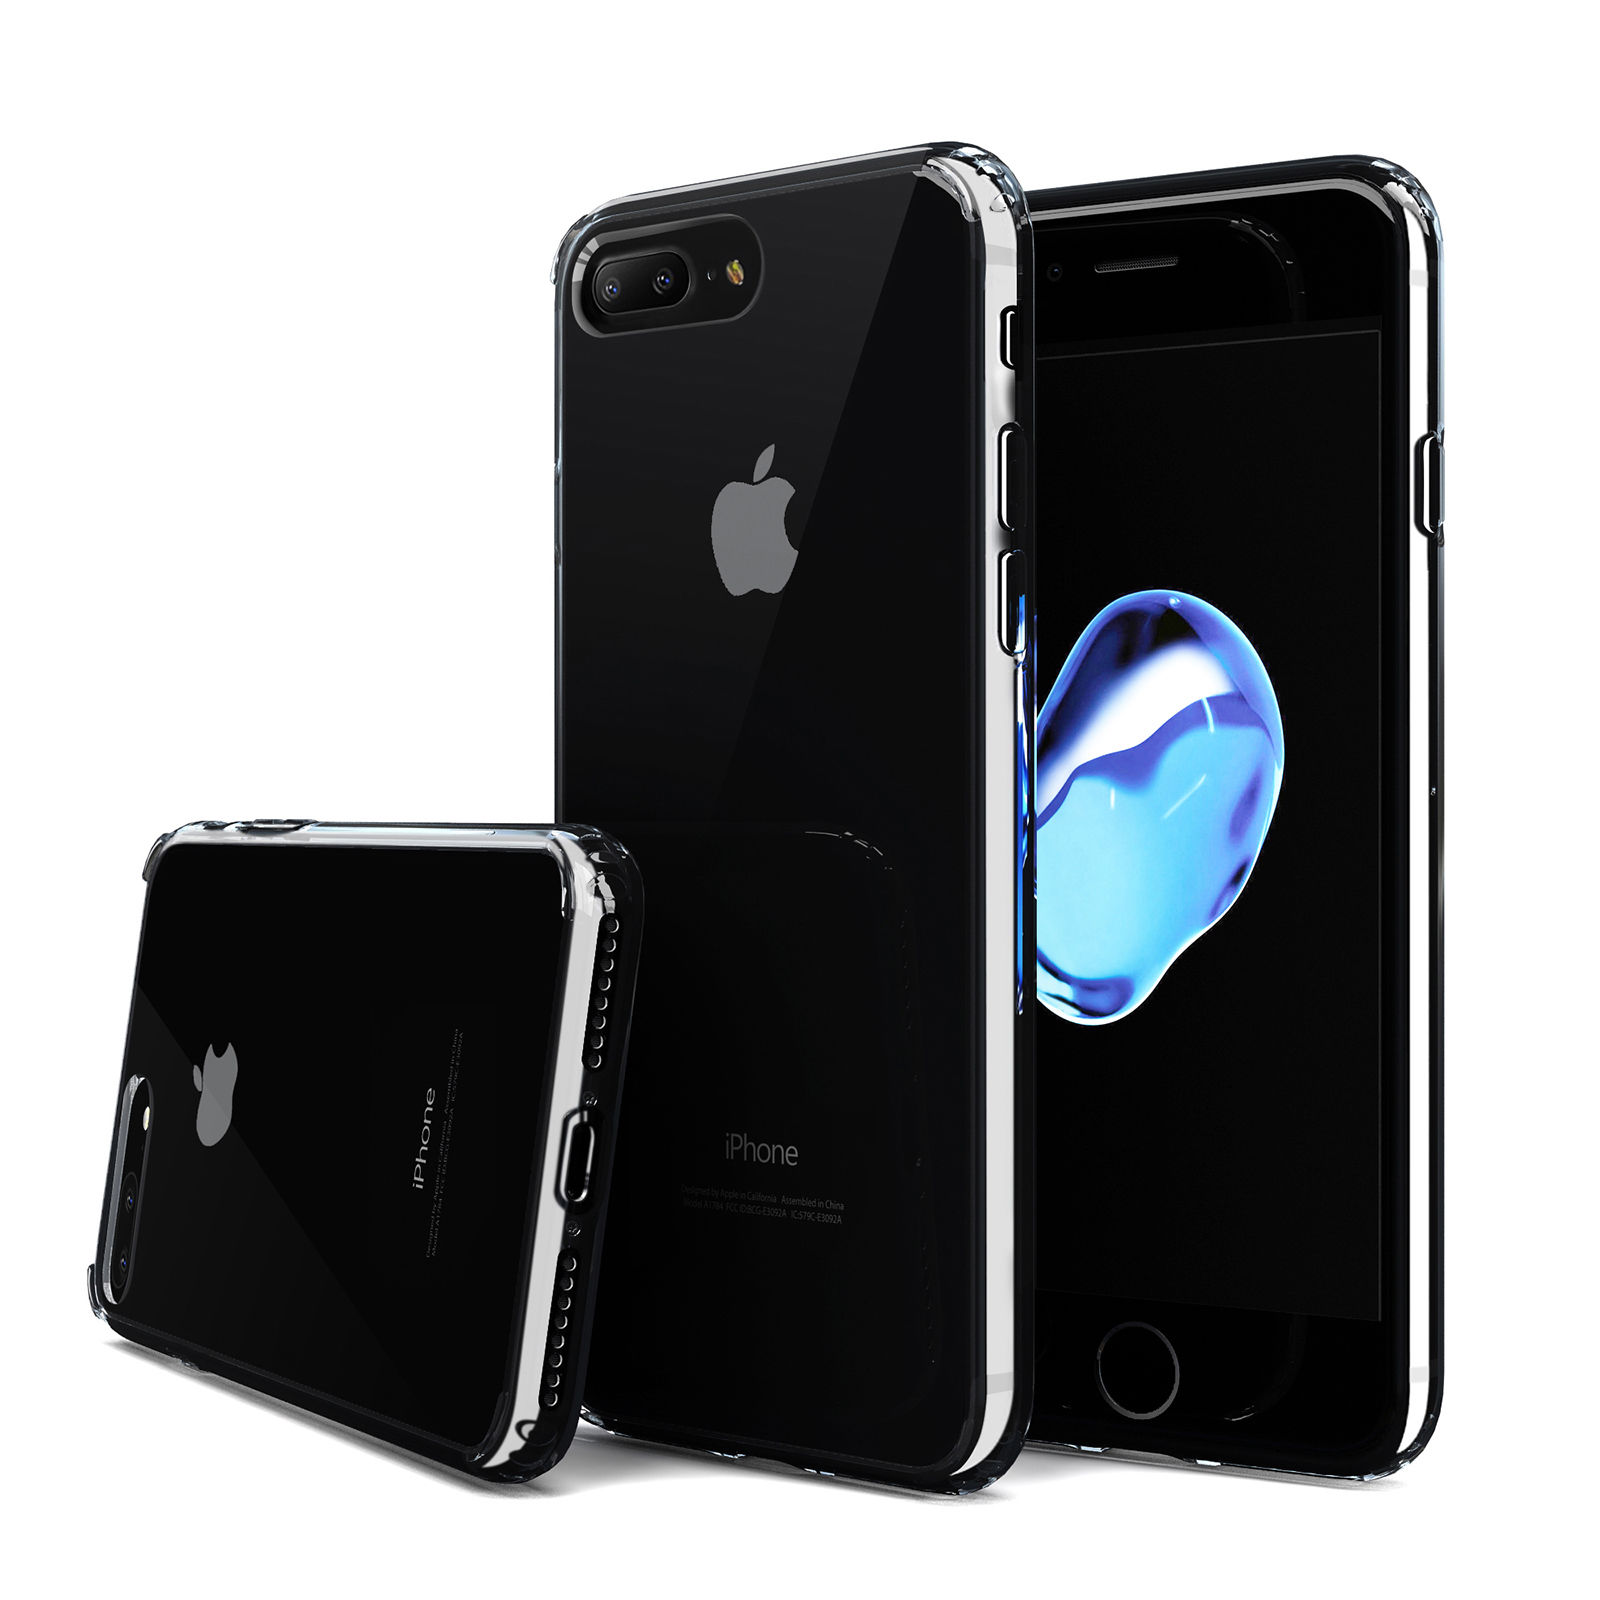 iPhone 7 Plus Case - Quirkio - Crystal Clear TPU Gel Transparent Protective Cover Ultra Slim Soft Rubber Dust Proof Hard Bumper Back Skin Slim Fit Case for iPhone 7 Plus